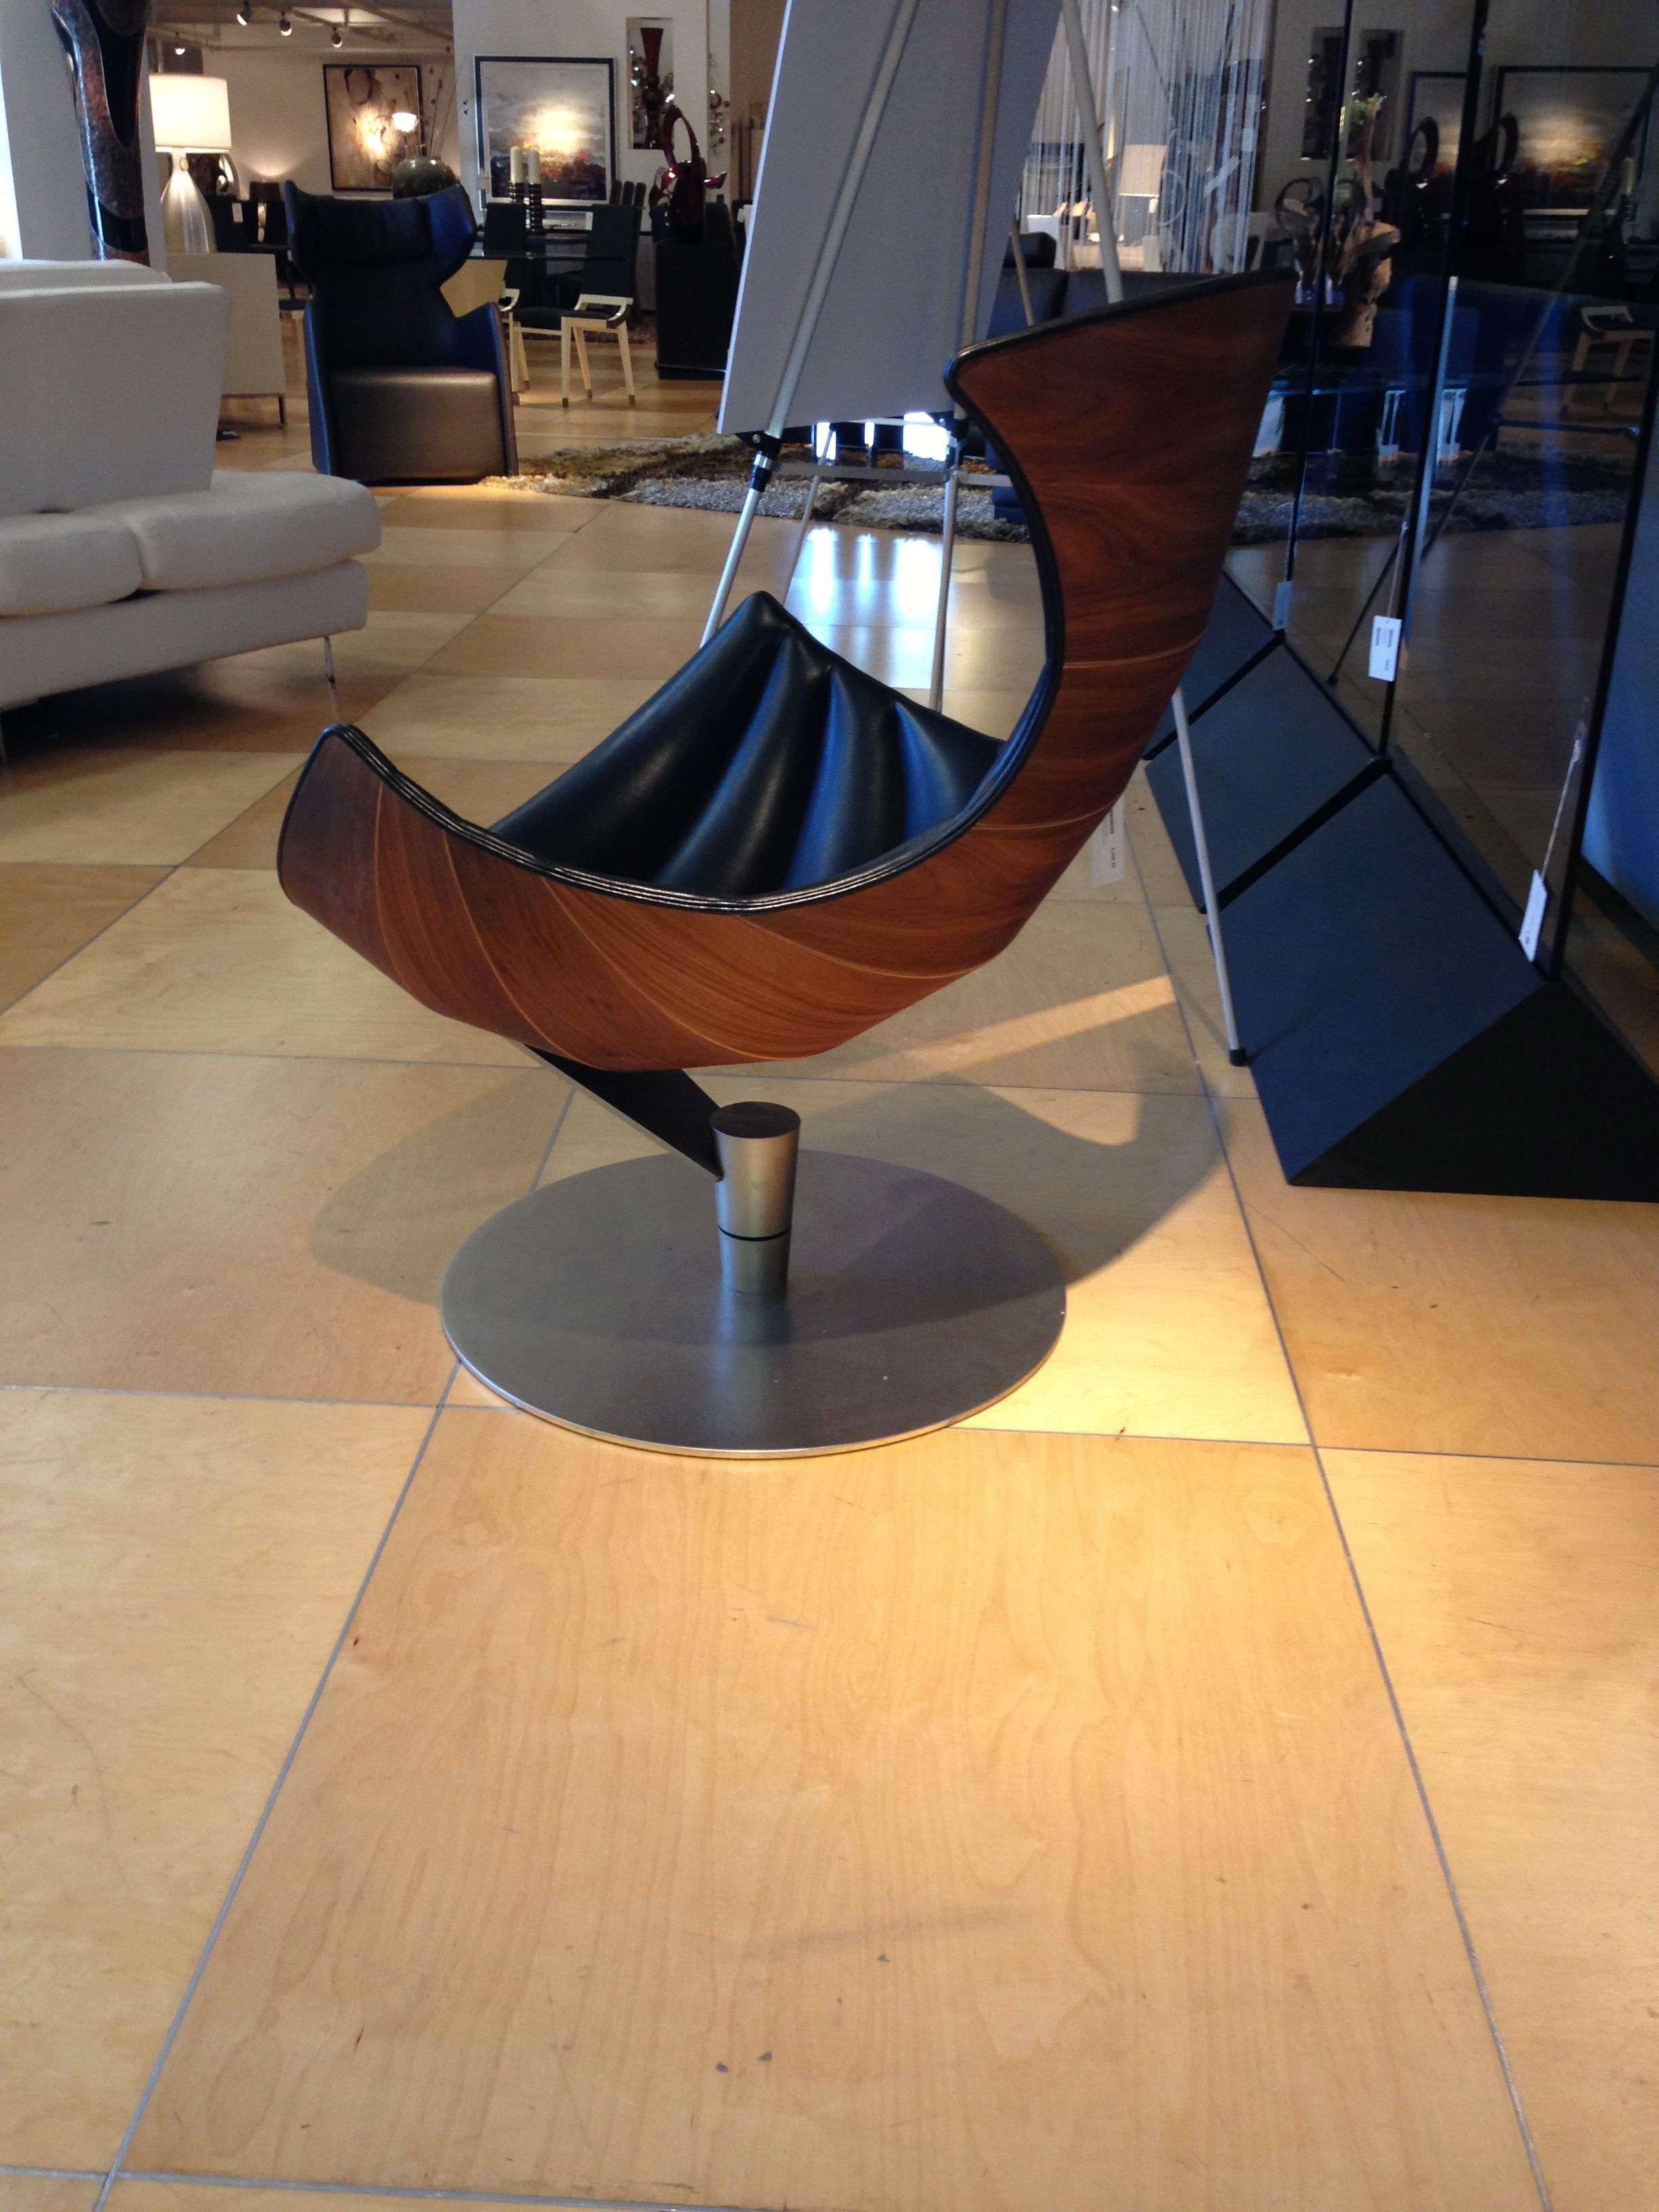 Side View Of The Lobster Chair So Now You Can See Where It Gets Its Name Come Into Our Scan De Scan Design